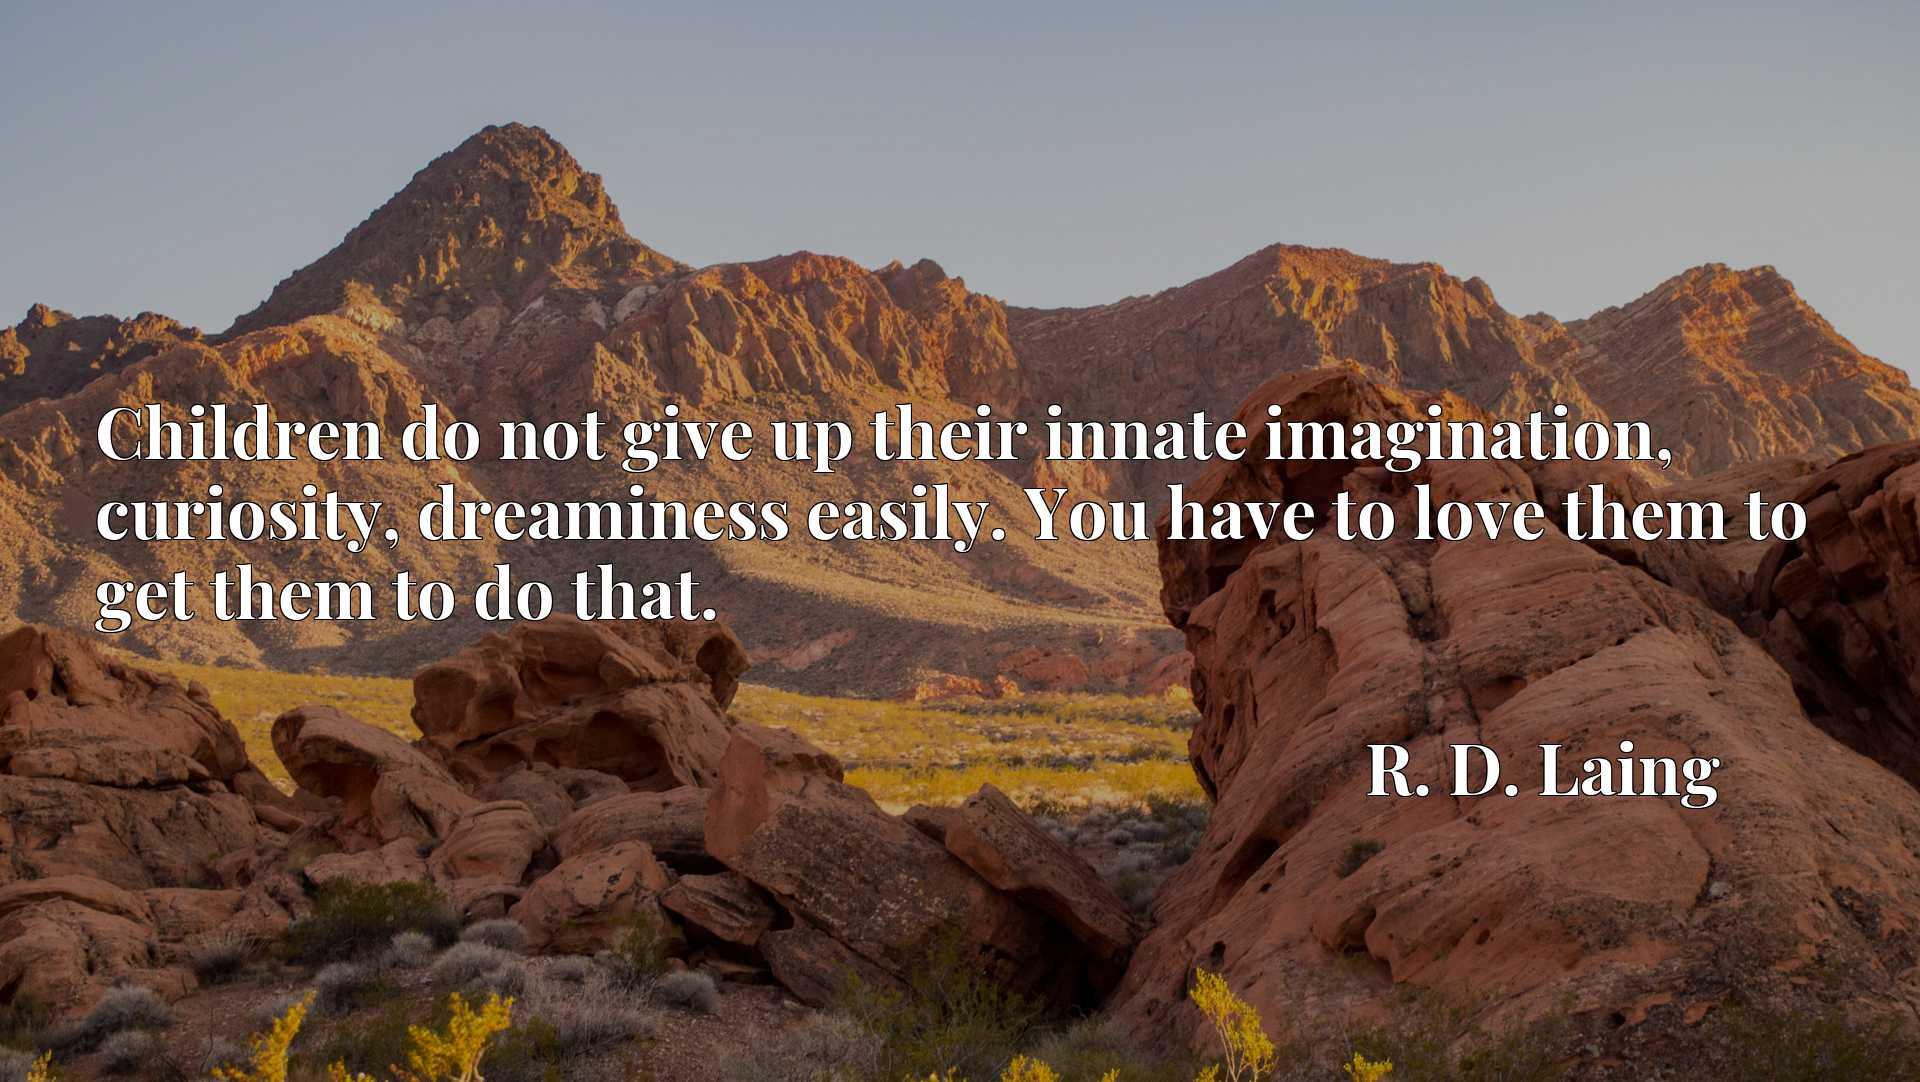 Quote Picture :Children do not give up their innate imagination, curiosity, dreaminess easily. You have to love them to get them to do that.